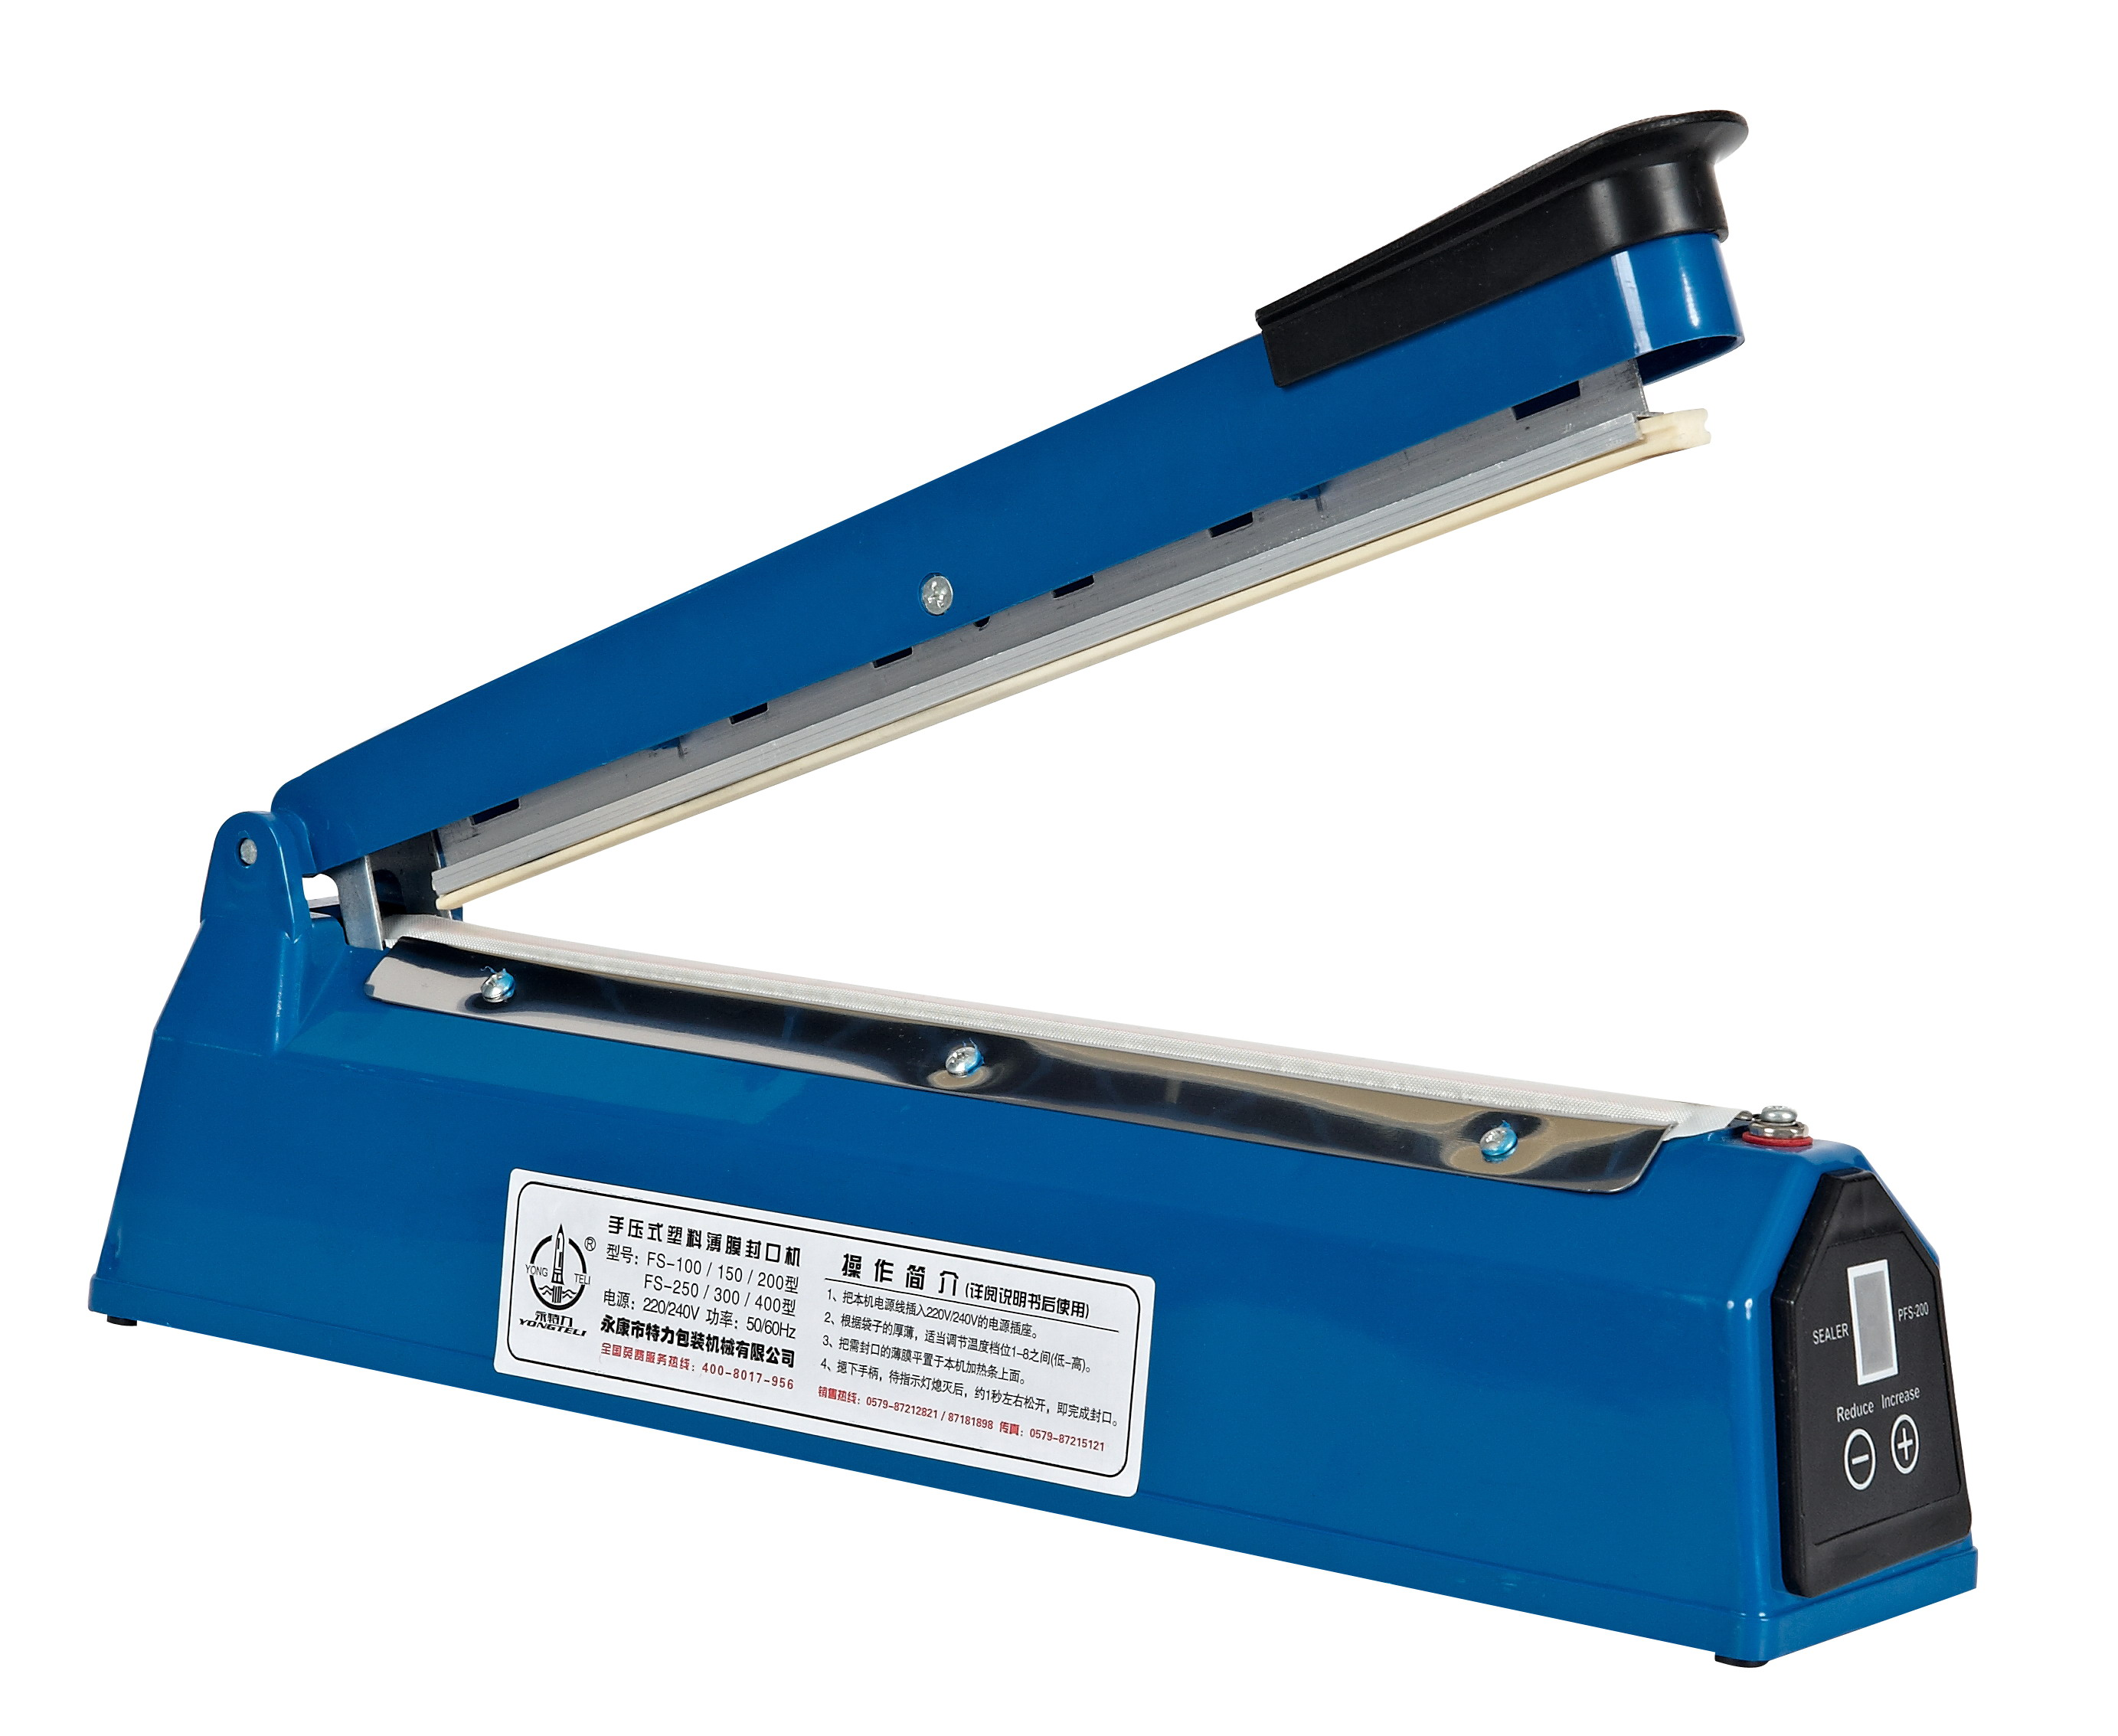 PRODUCTS / Manual impulse sealer / Plastic hand impulse sealer